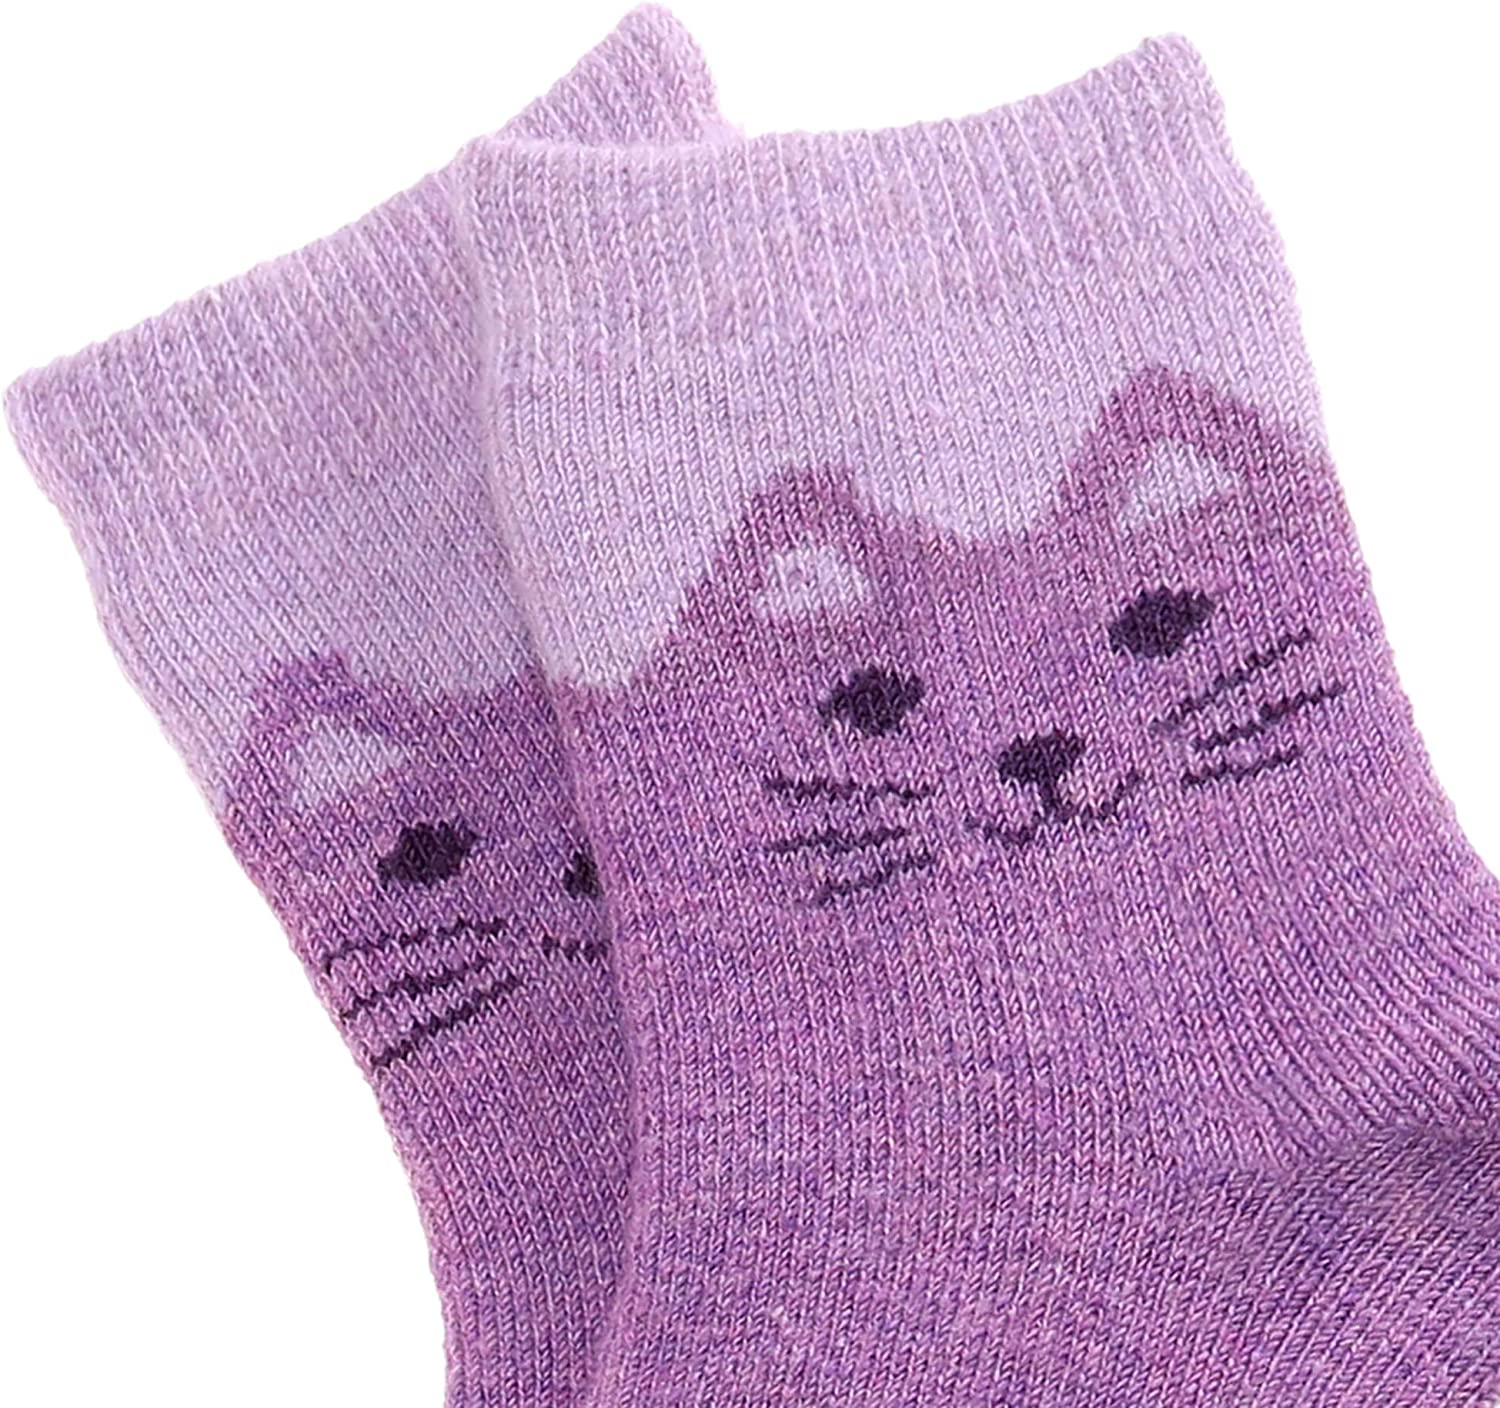 MSMETRO 6 Value Pack Girls Boys Thick Wool Socks Cute Animal Snowflake Warm Thermal Winter Crew Christmas Gift Socks